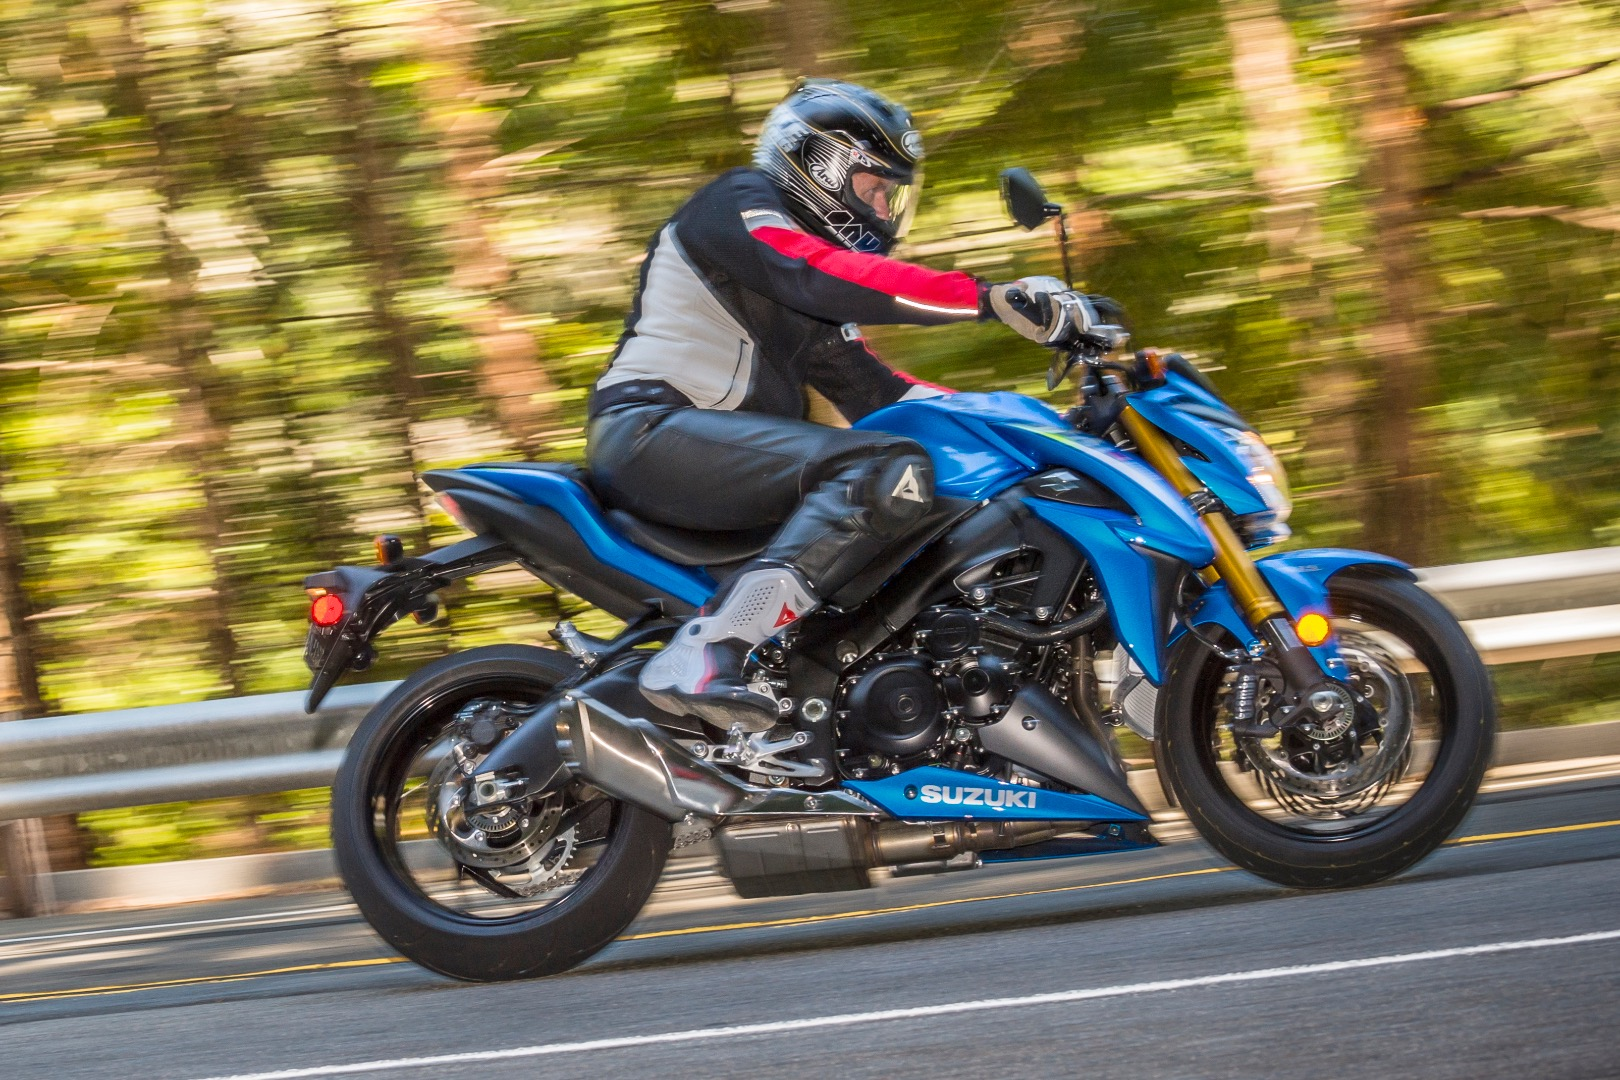 Suzuki GSX-S 1000, an Ultimate Motorcycling Top 25 Bike of 2016